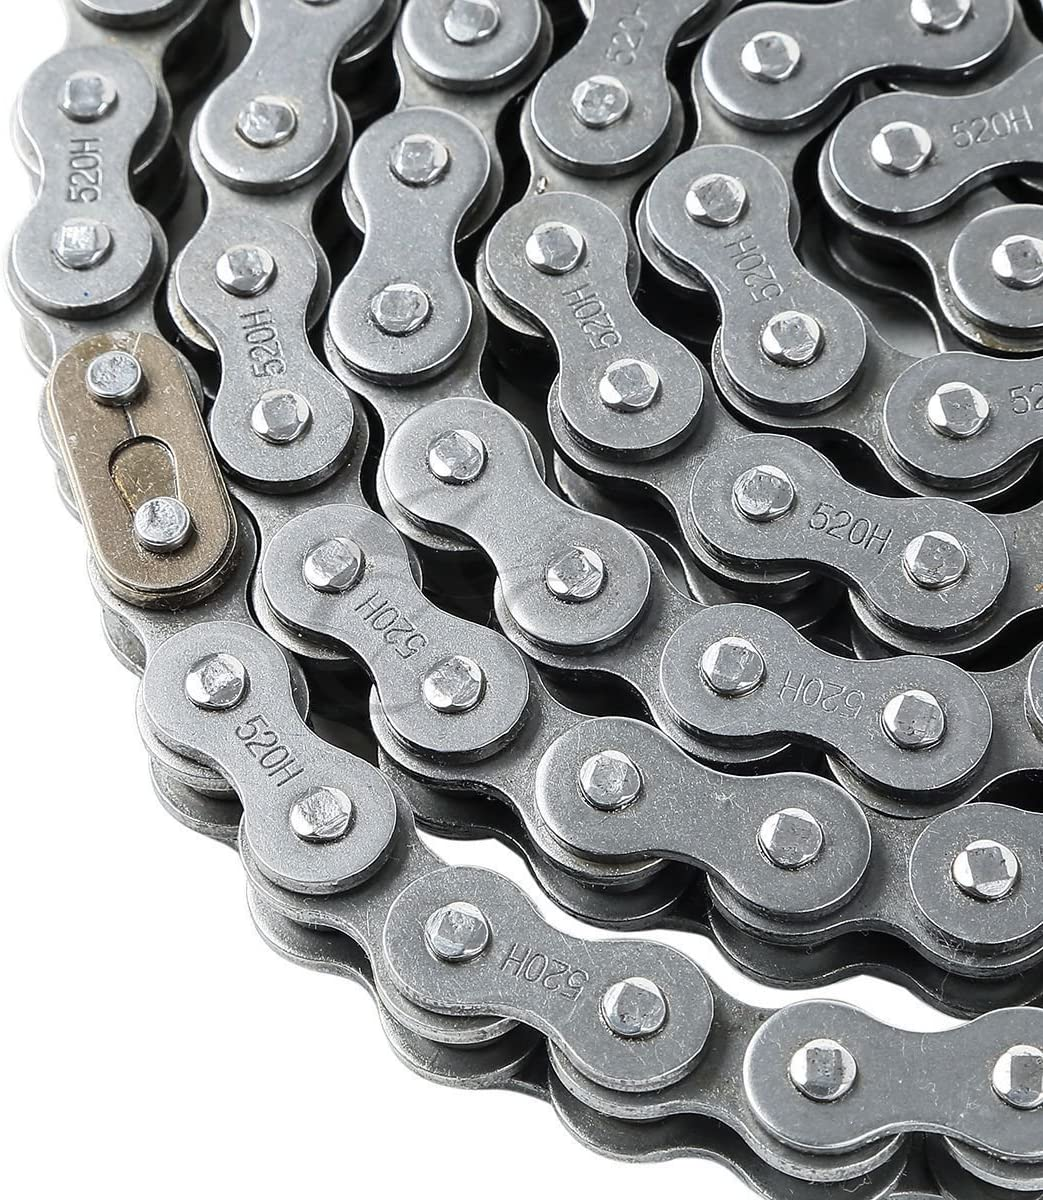 XMT-MOTO Heavy Duty 520H-120L Motorcycle ATV Drive Chain 520 Pitch 120Links